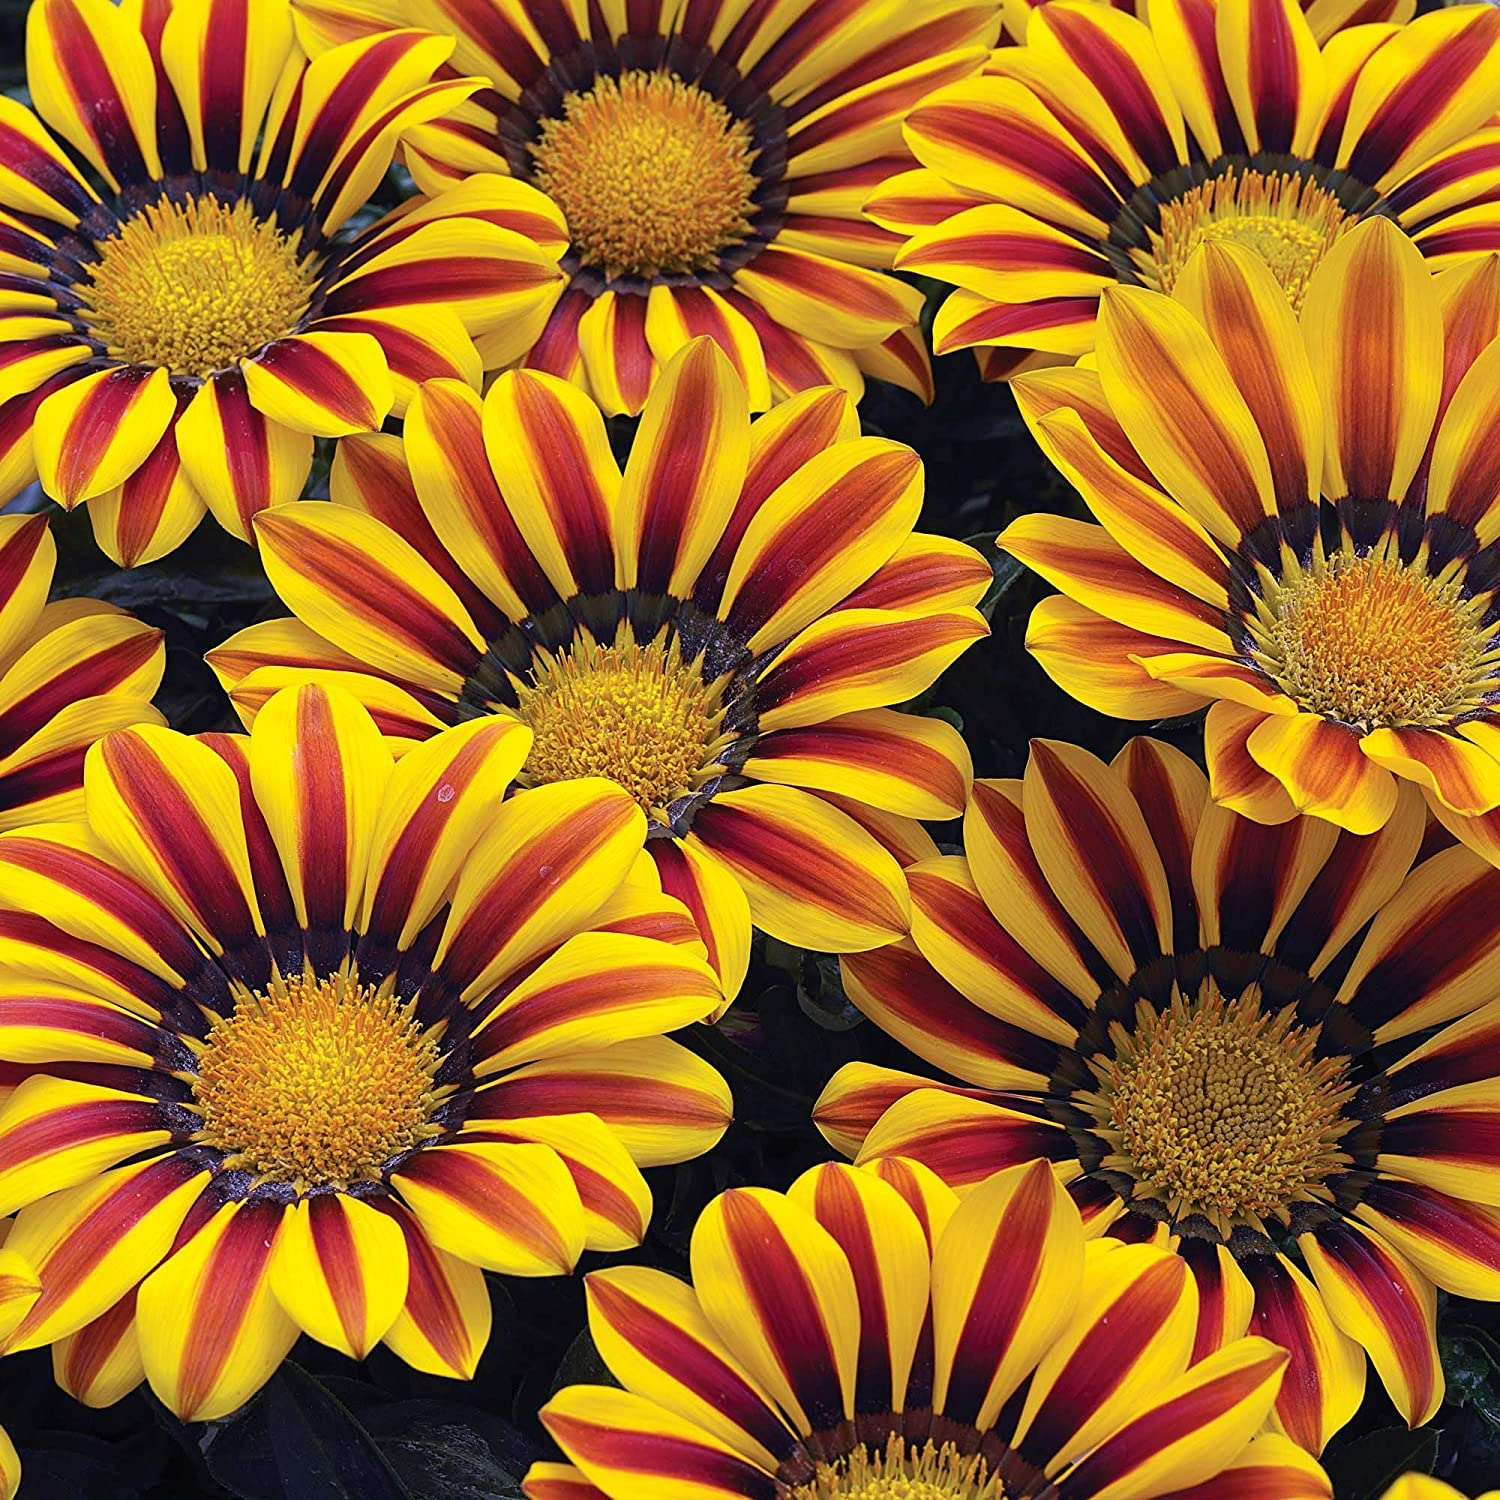 Exotic Gazinga Flower Seeds - 100+ Seeds to Grow - Made in USA, Ships from Iowa - Great with Marigold or Roses